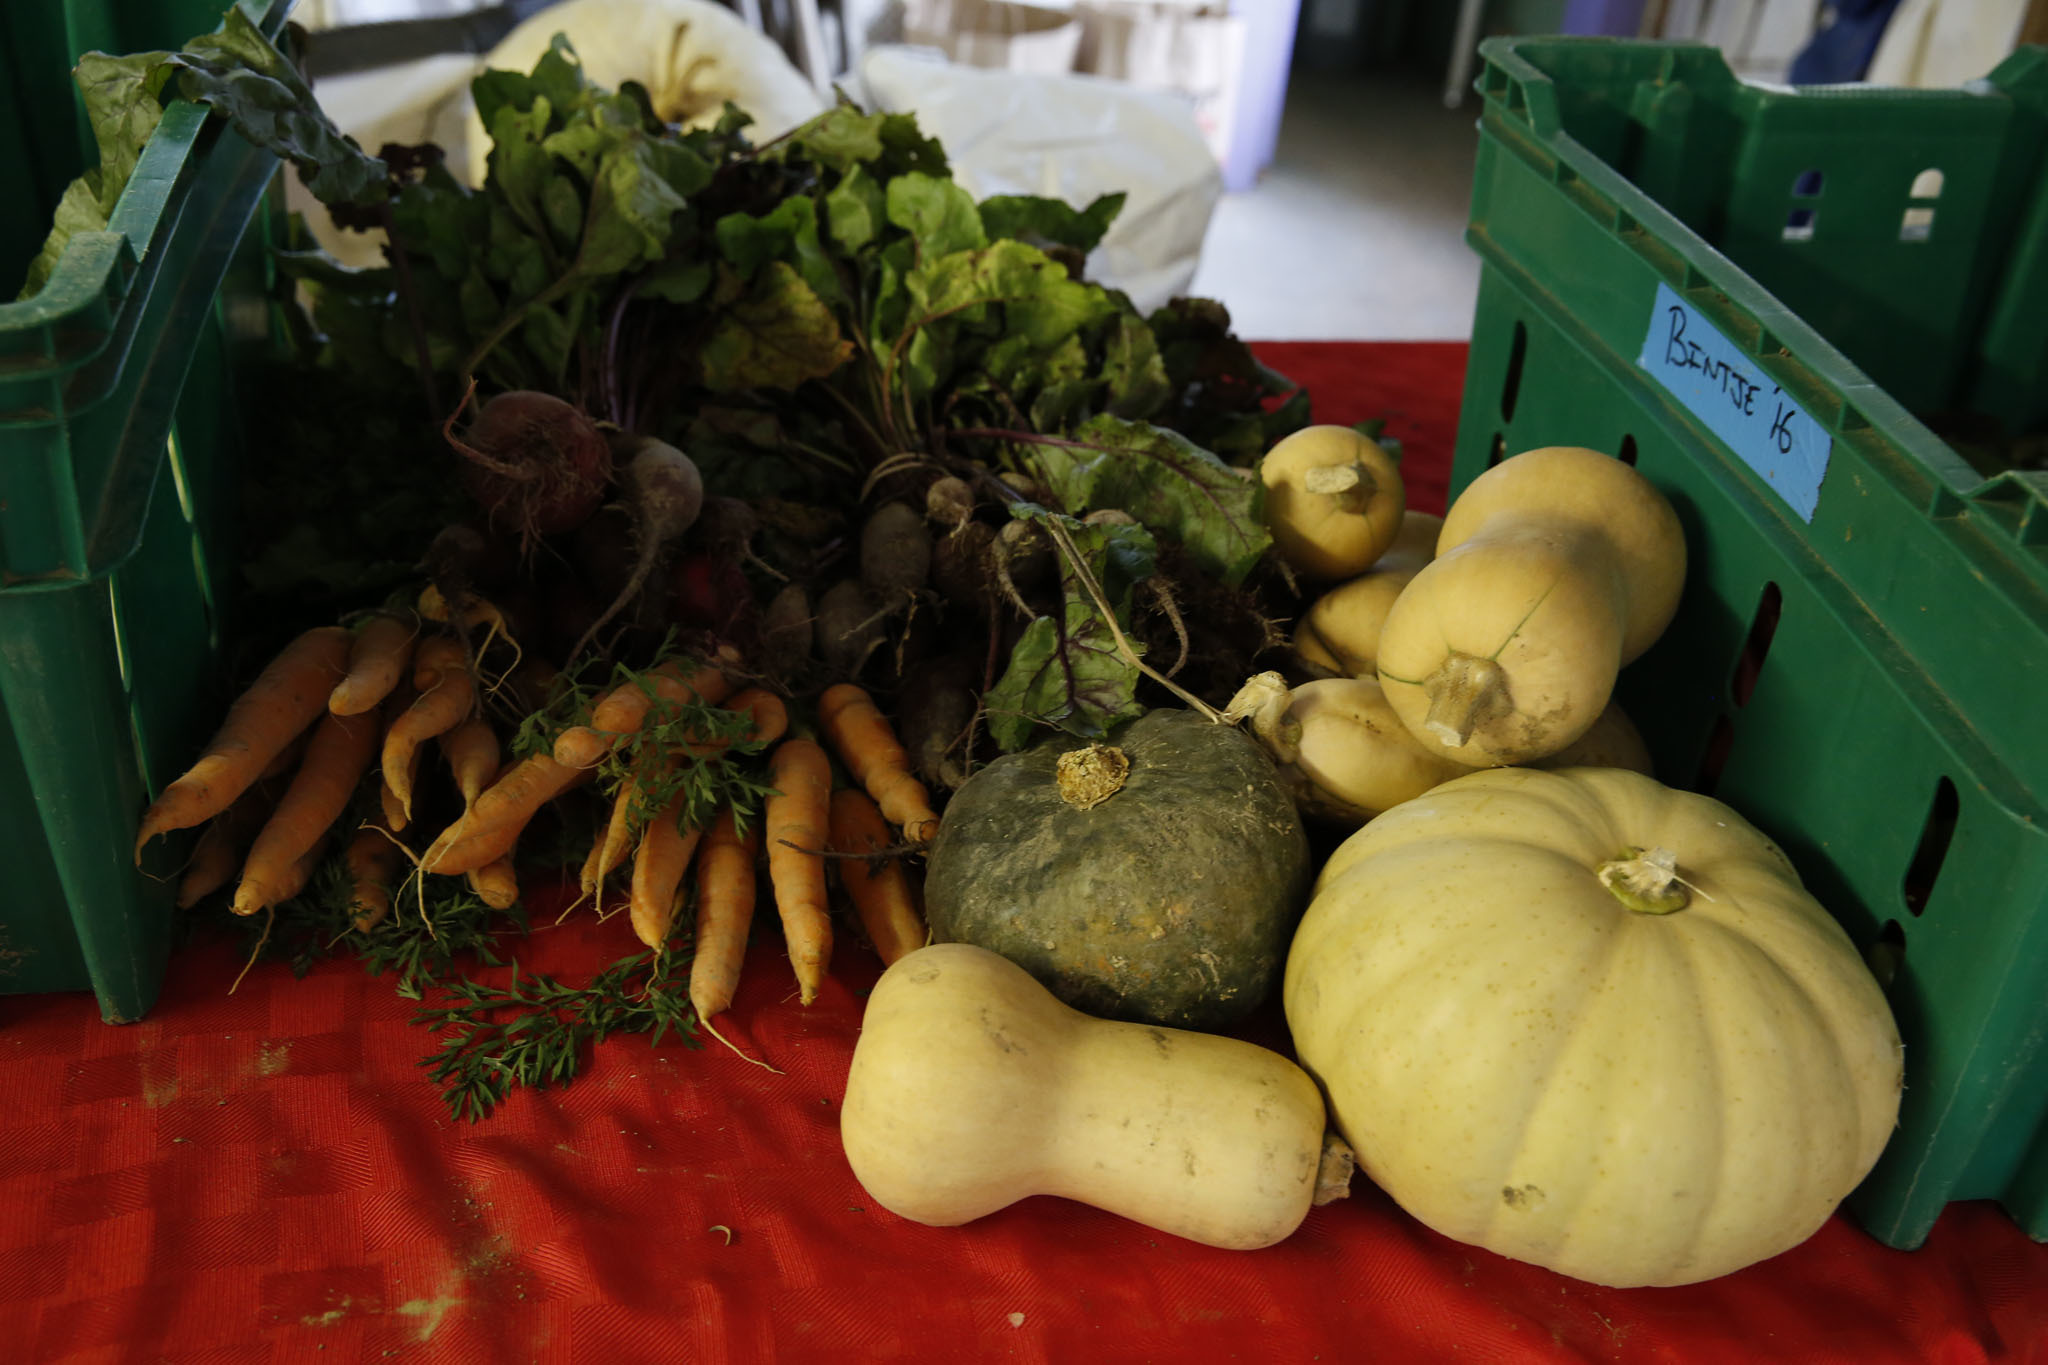 Autumn produce at Quail Hill Farm including carrots and squash